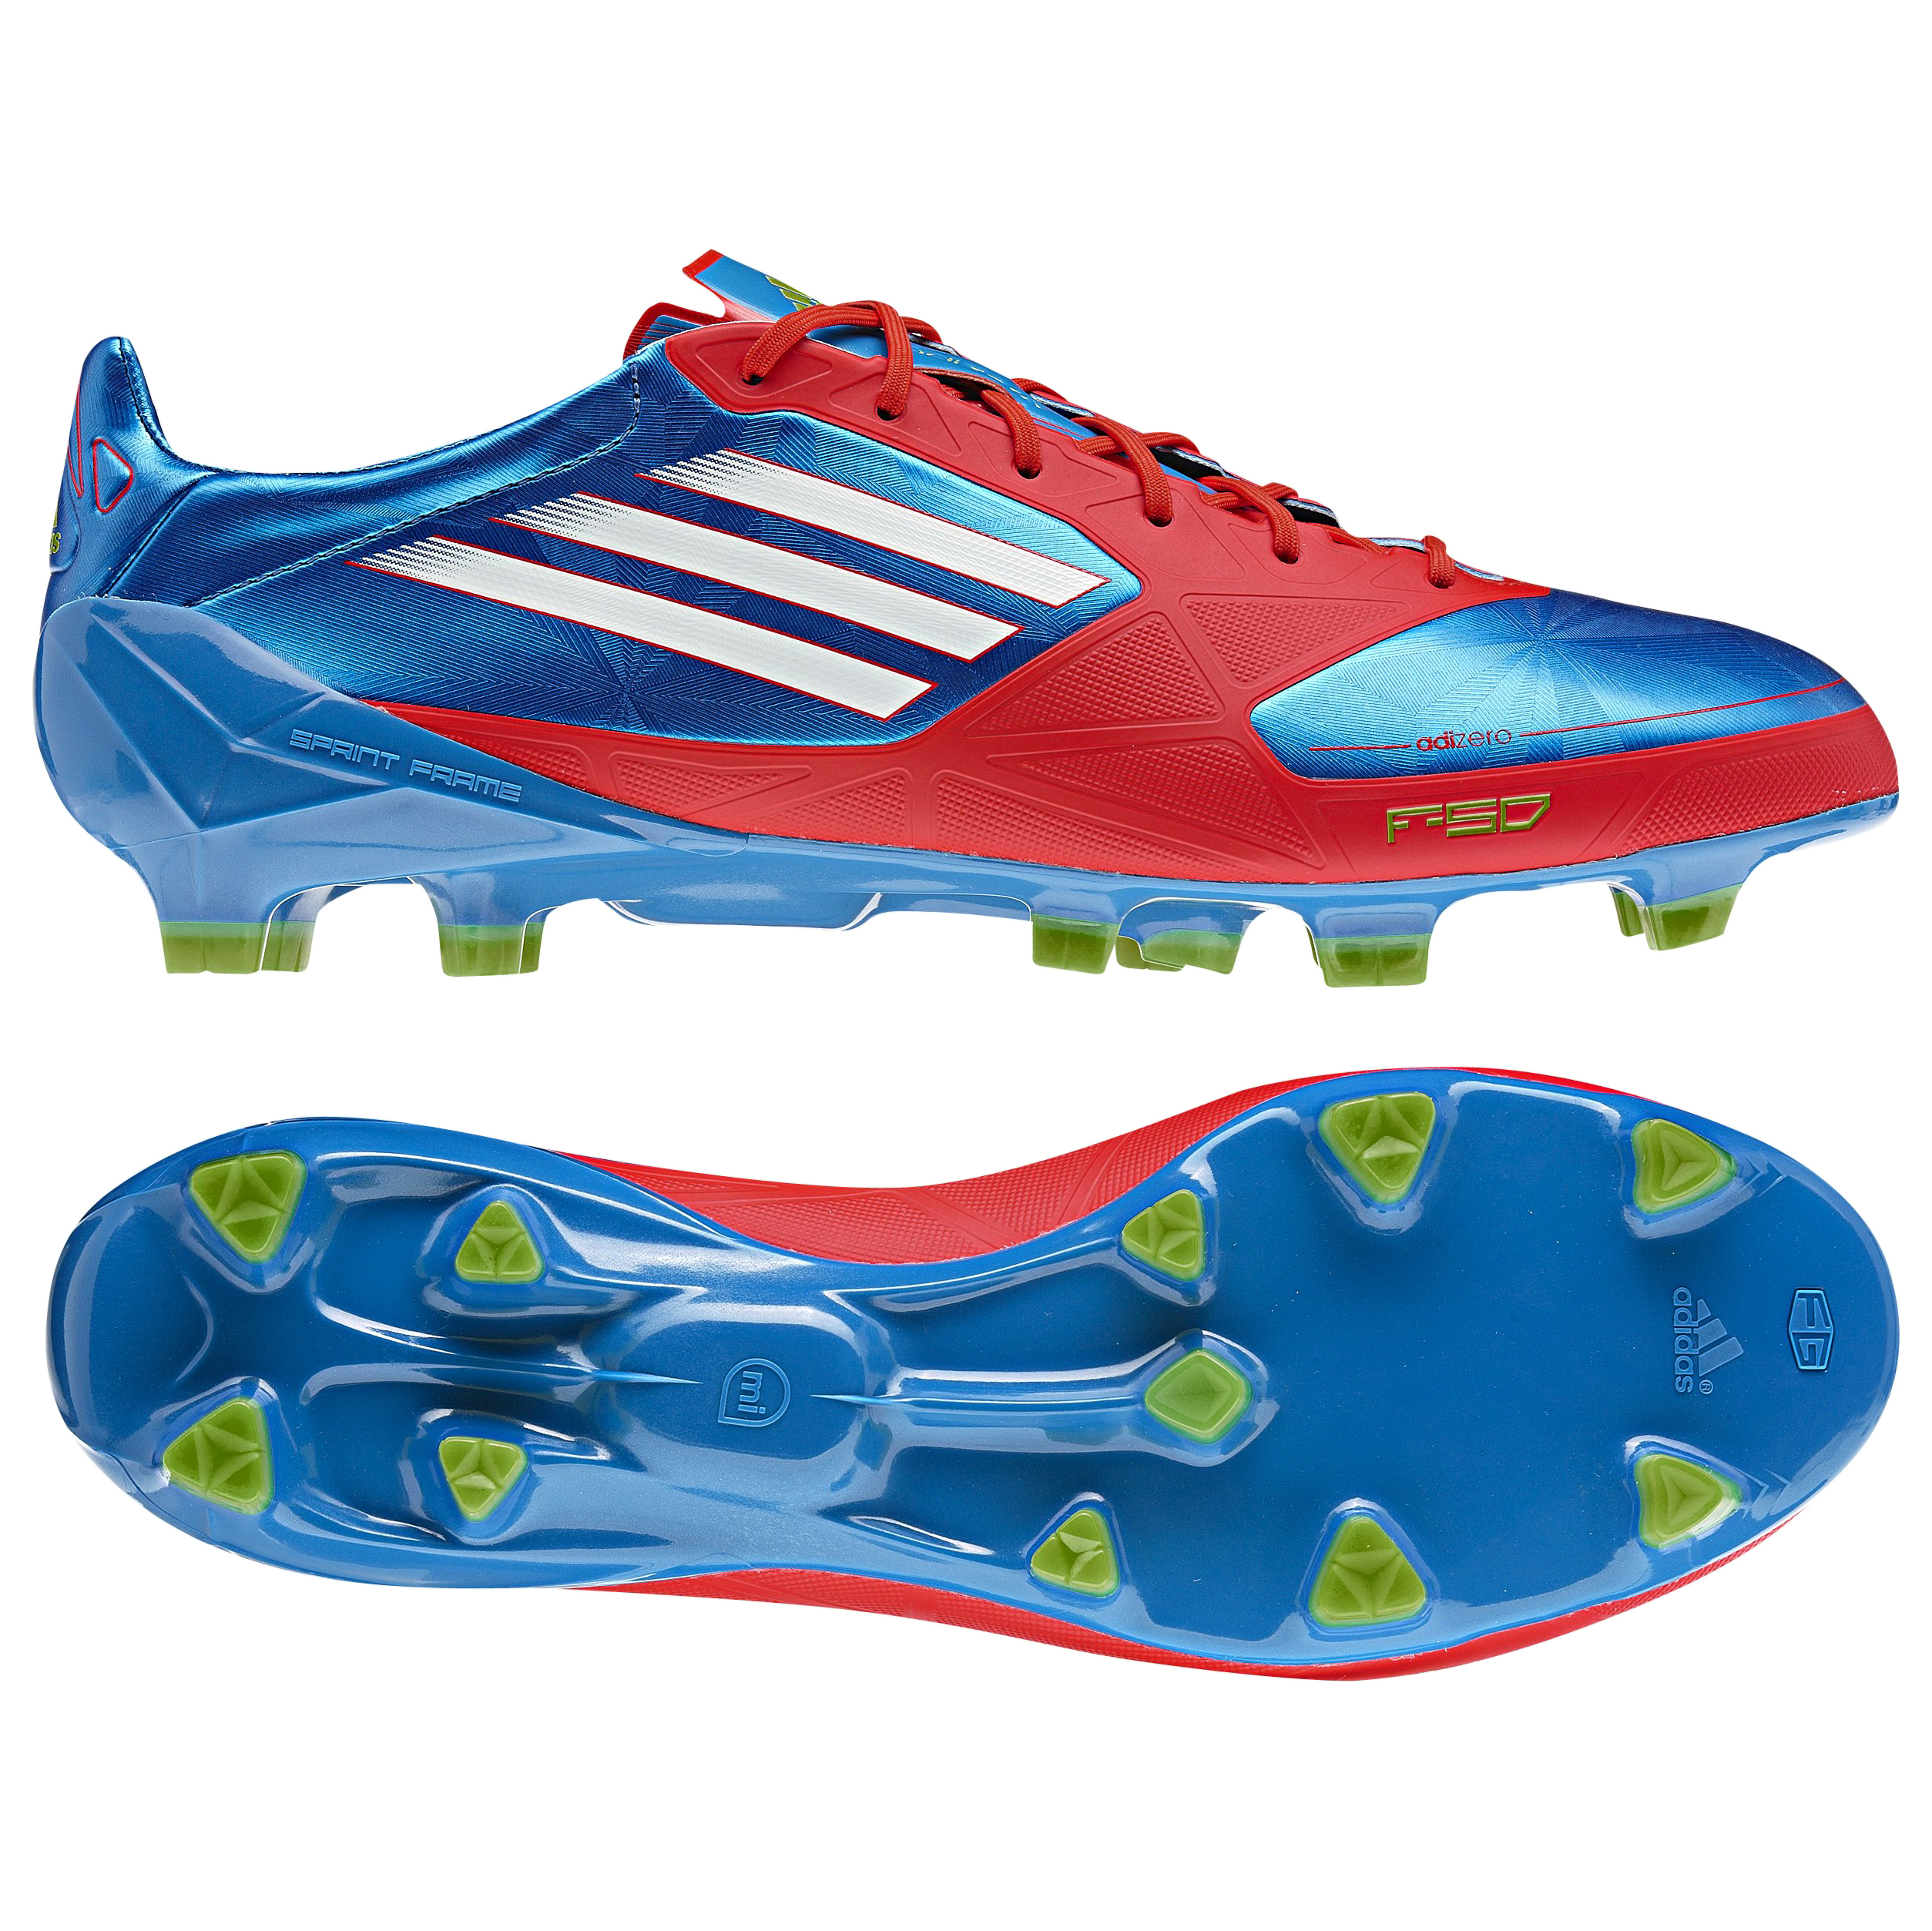 F50 adizero TRX FG Synthetic Prime Blue S12/White/Core Energy S12